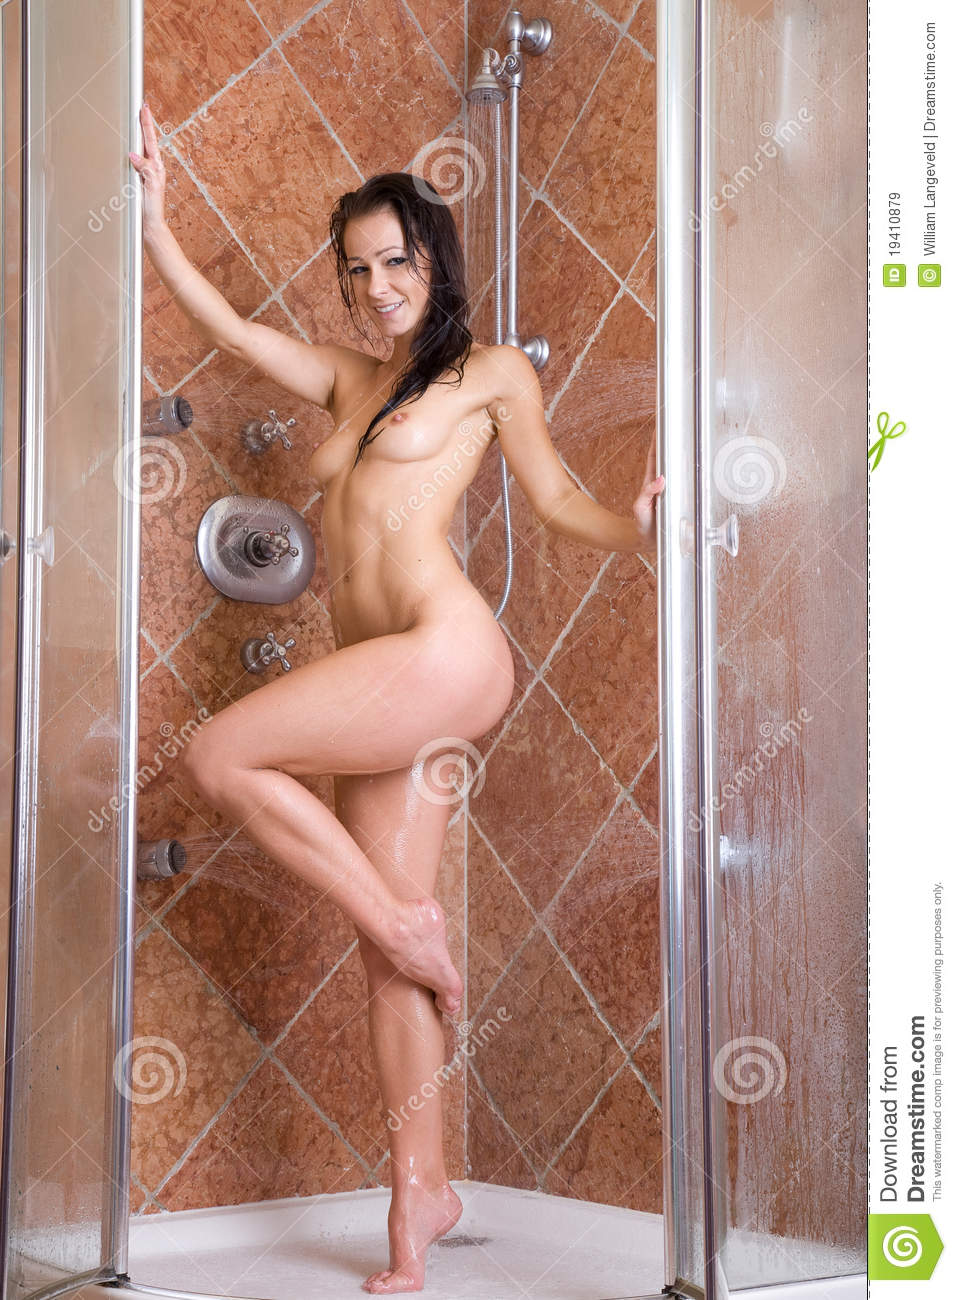 Well you! Latina women taking a nude shower